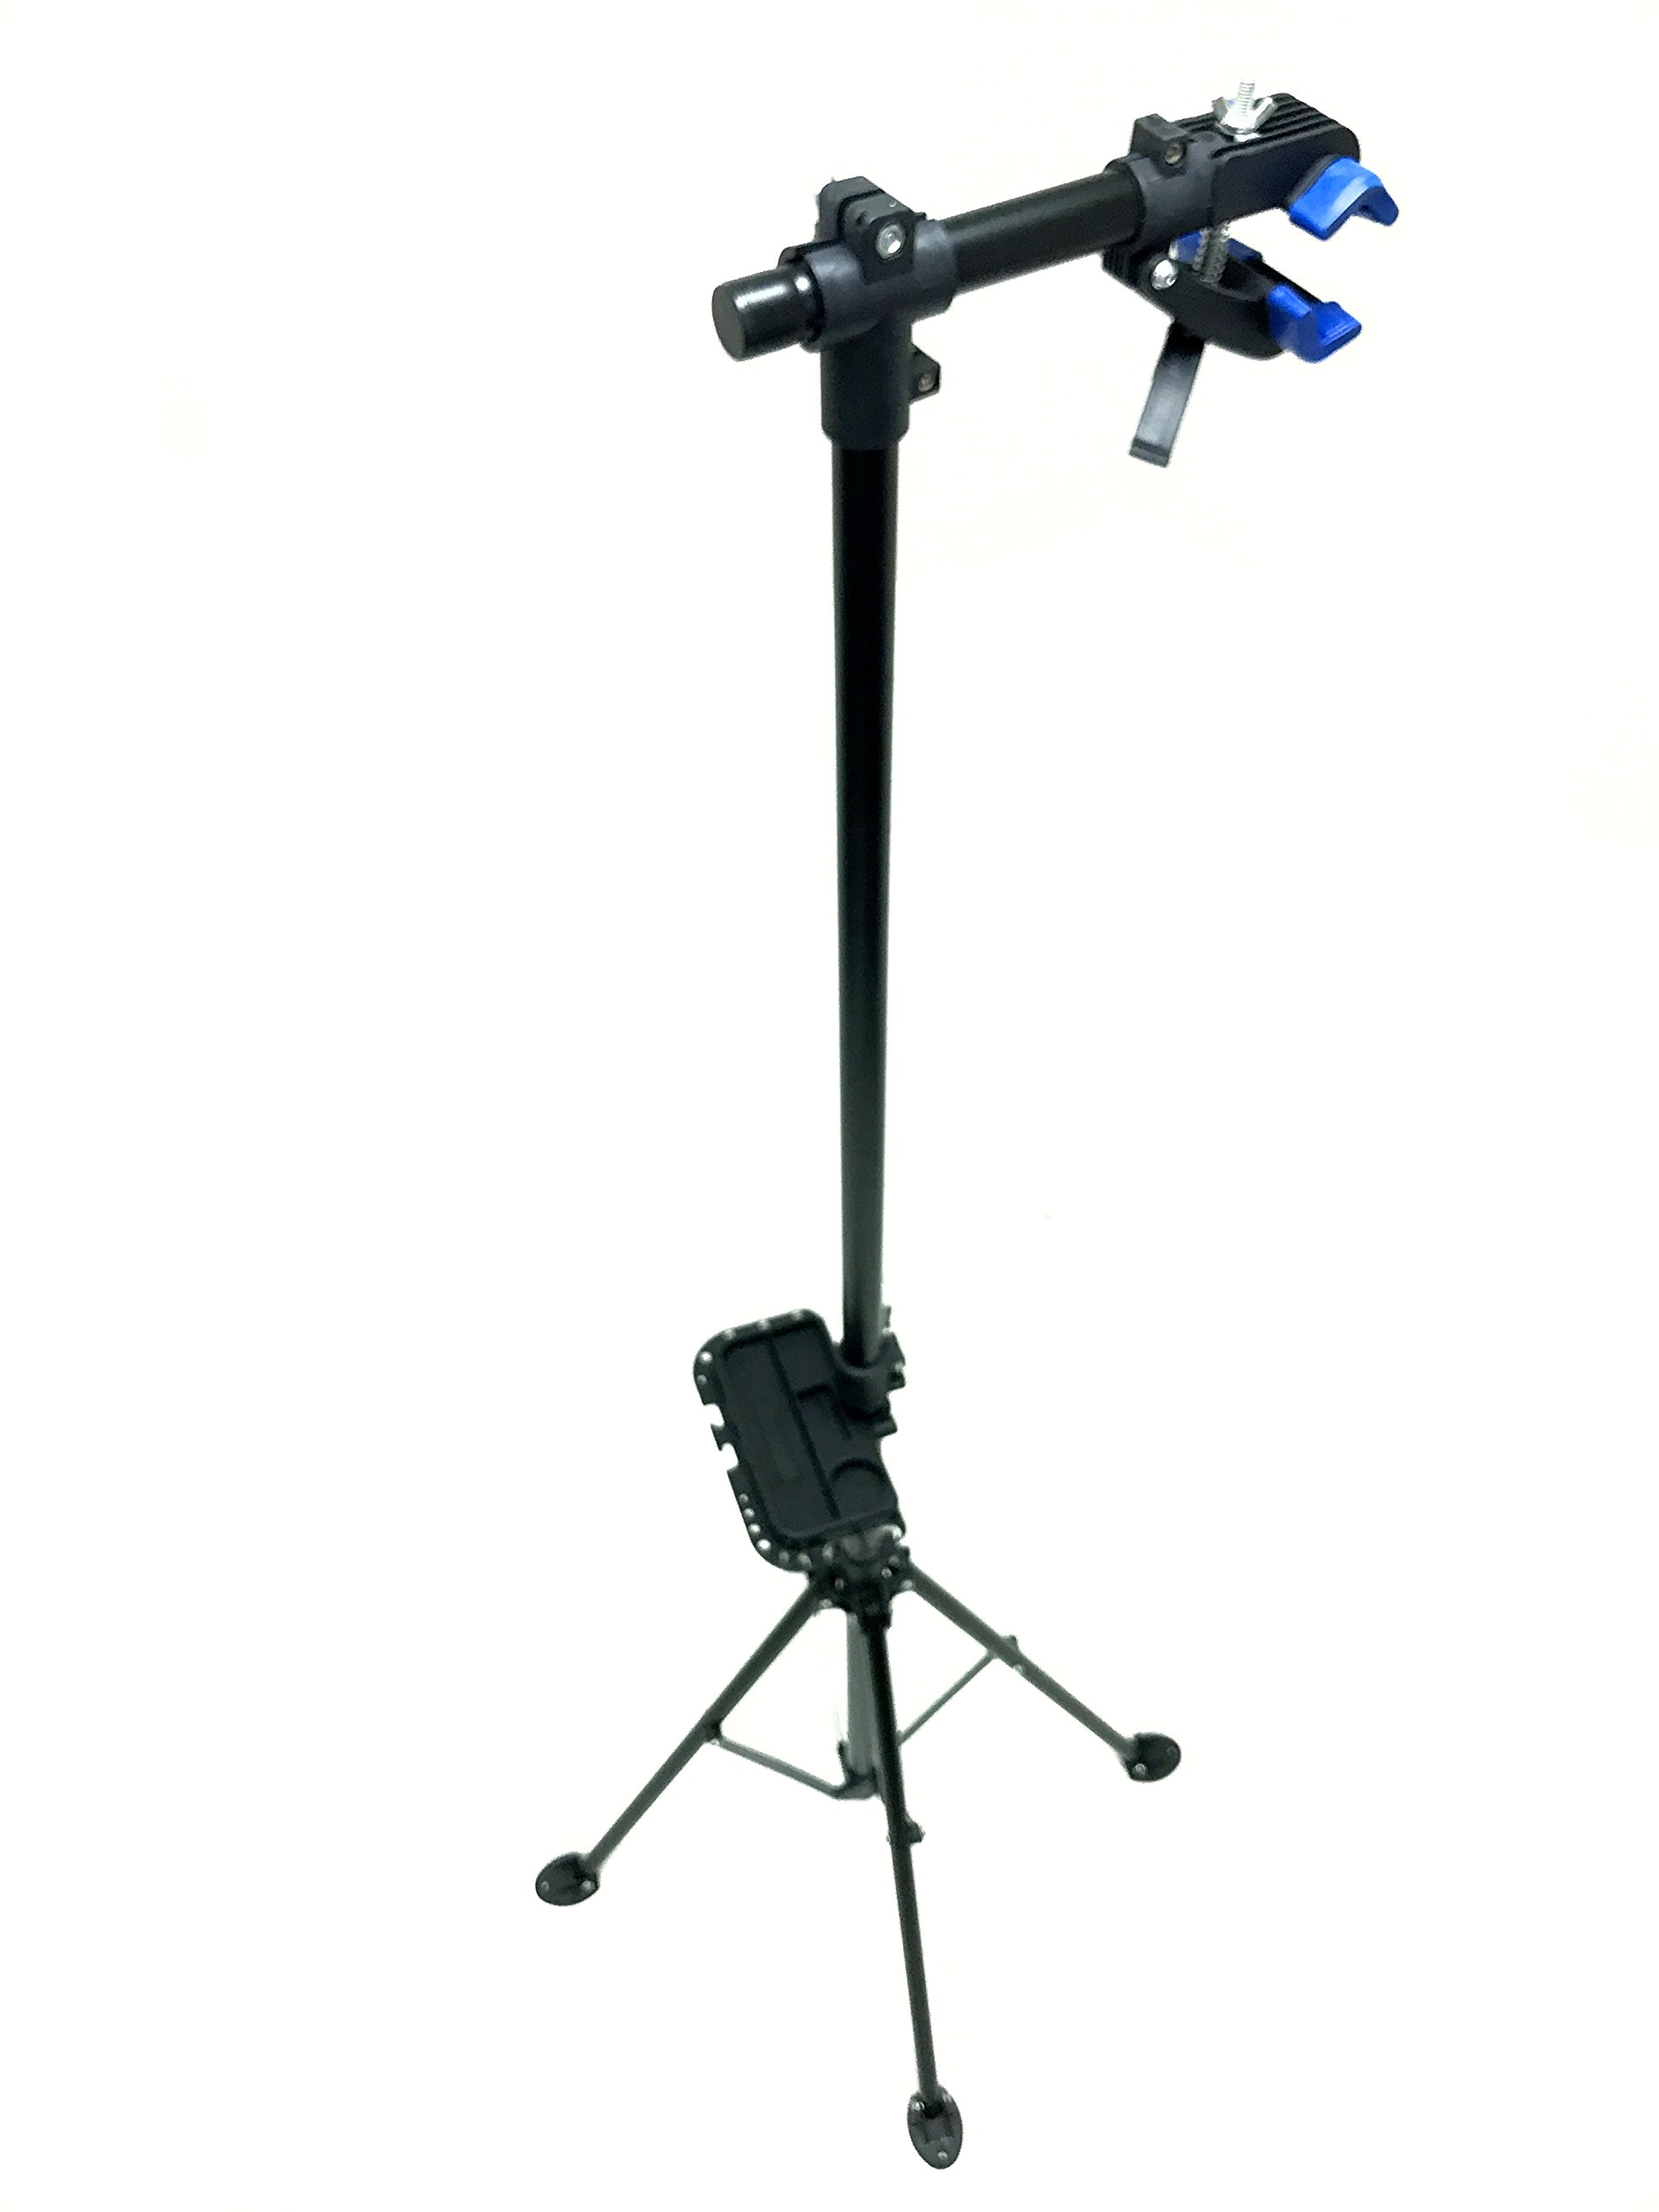 MaxxHaul 80725 Bike Repair Stand/Display with Adjustable Height & 360 Deg. Rotating Head Clamp by MaxxHaul